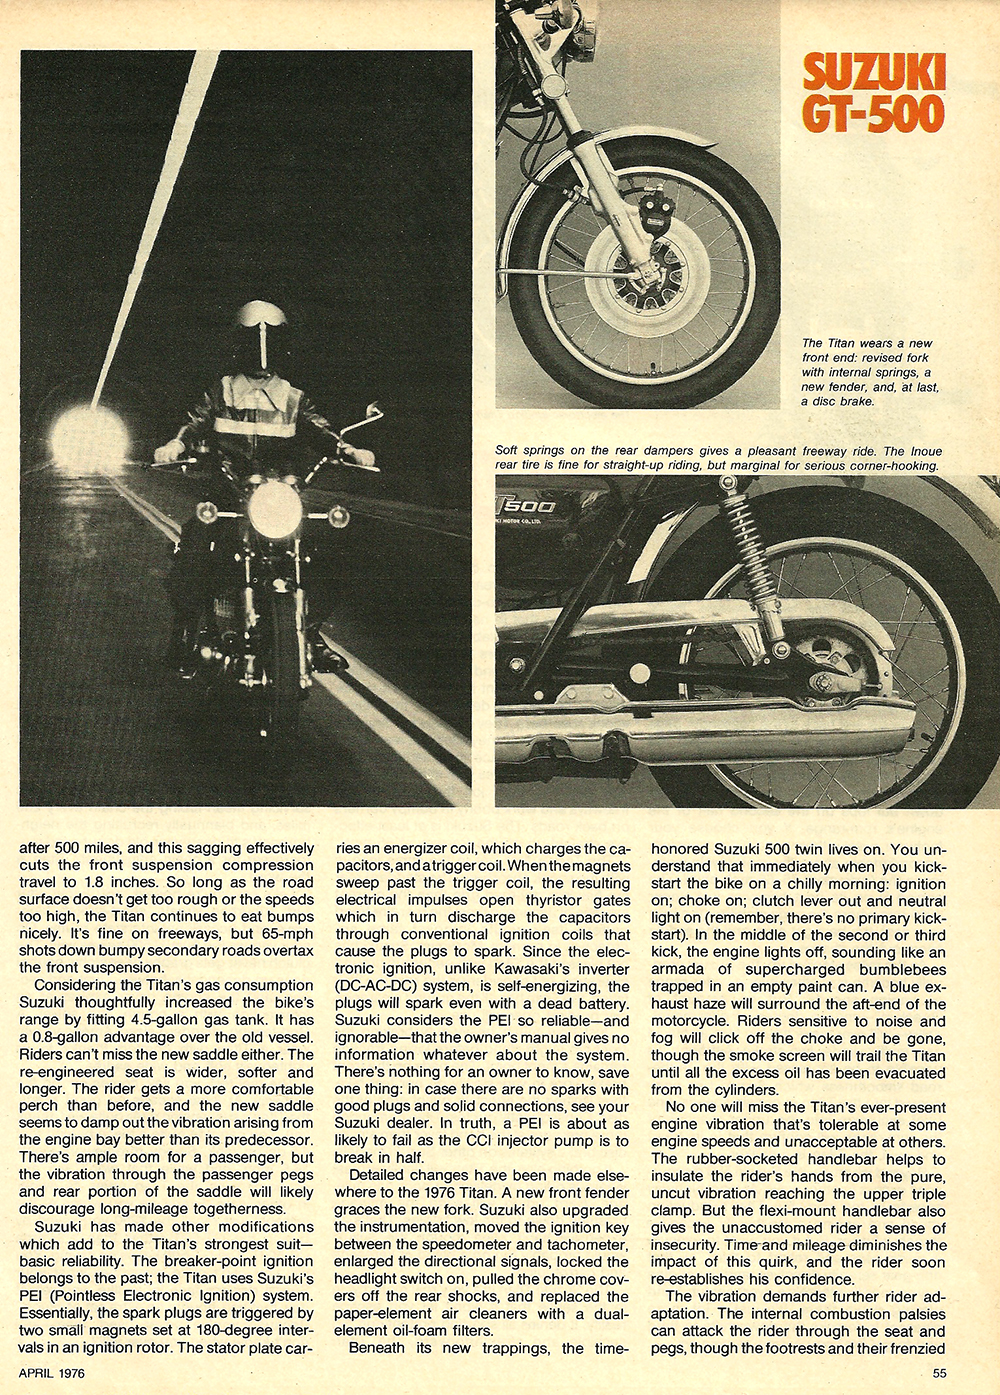 1976 Suzuki GT500 road test 4.jpg